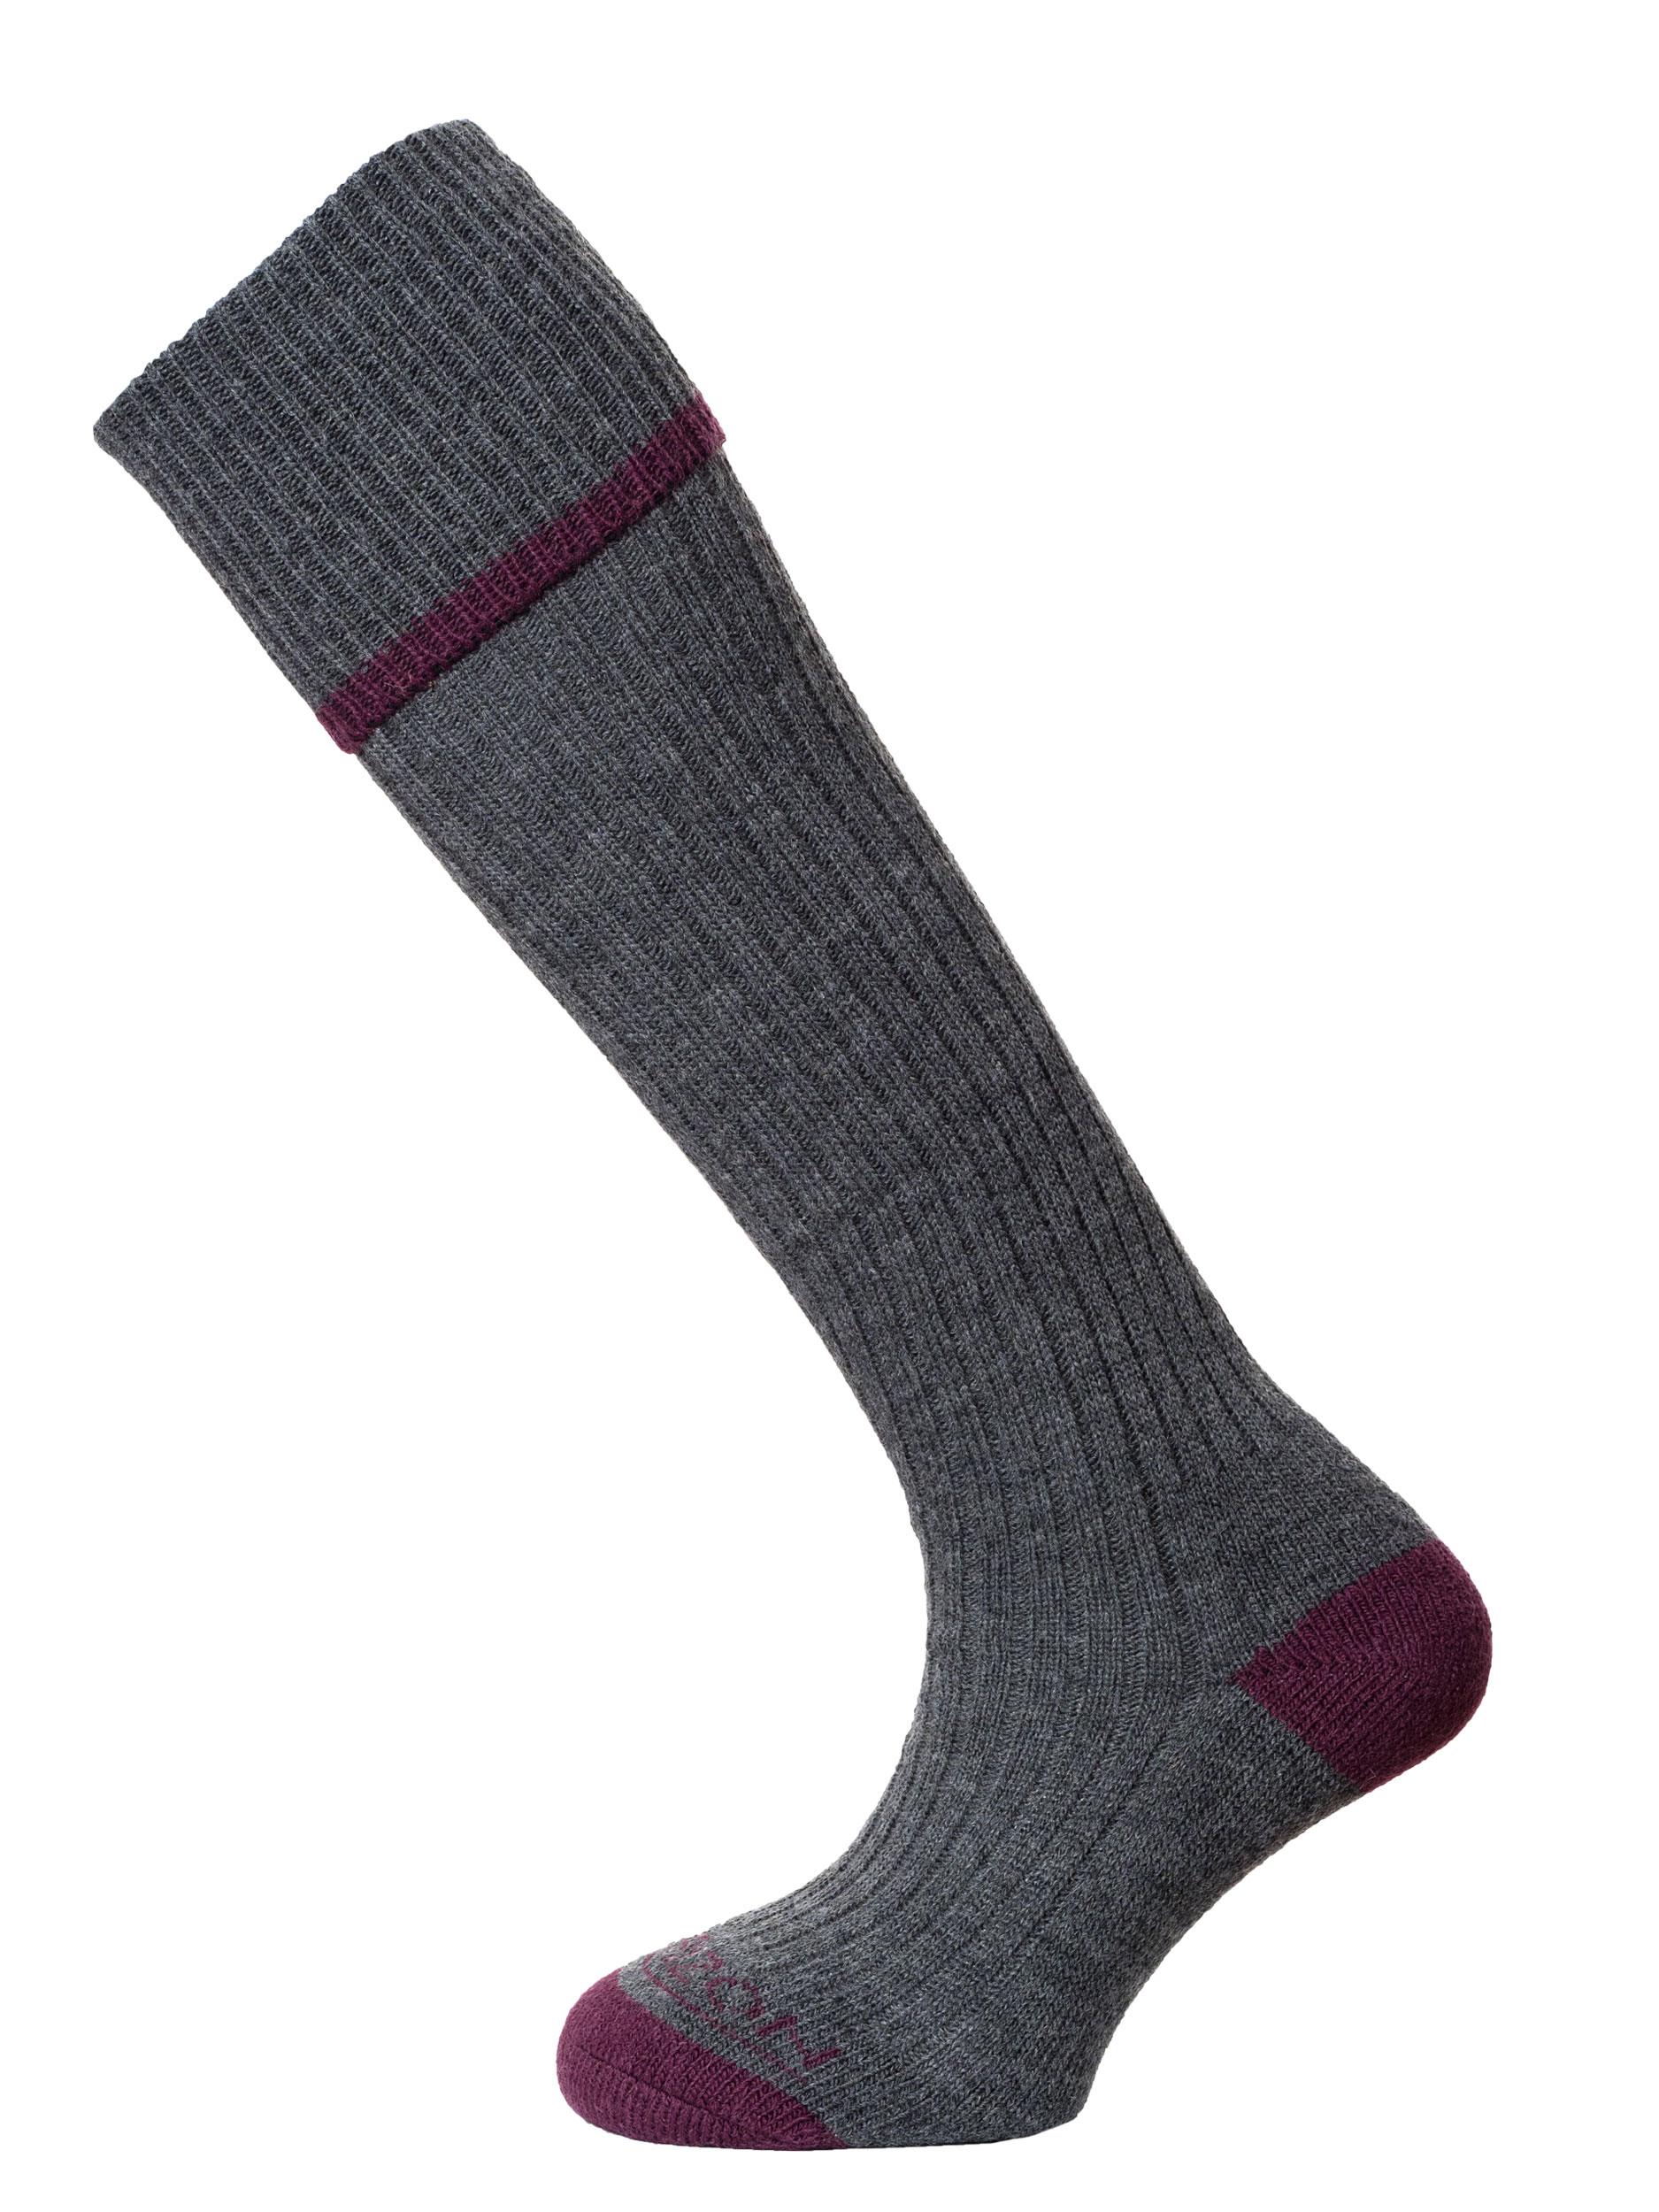 Horizon Field Sport Turn-over-Top Sock Charcoal Burgundy